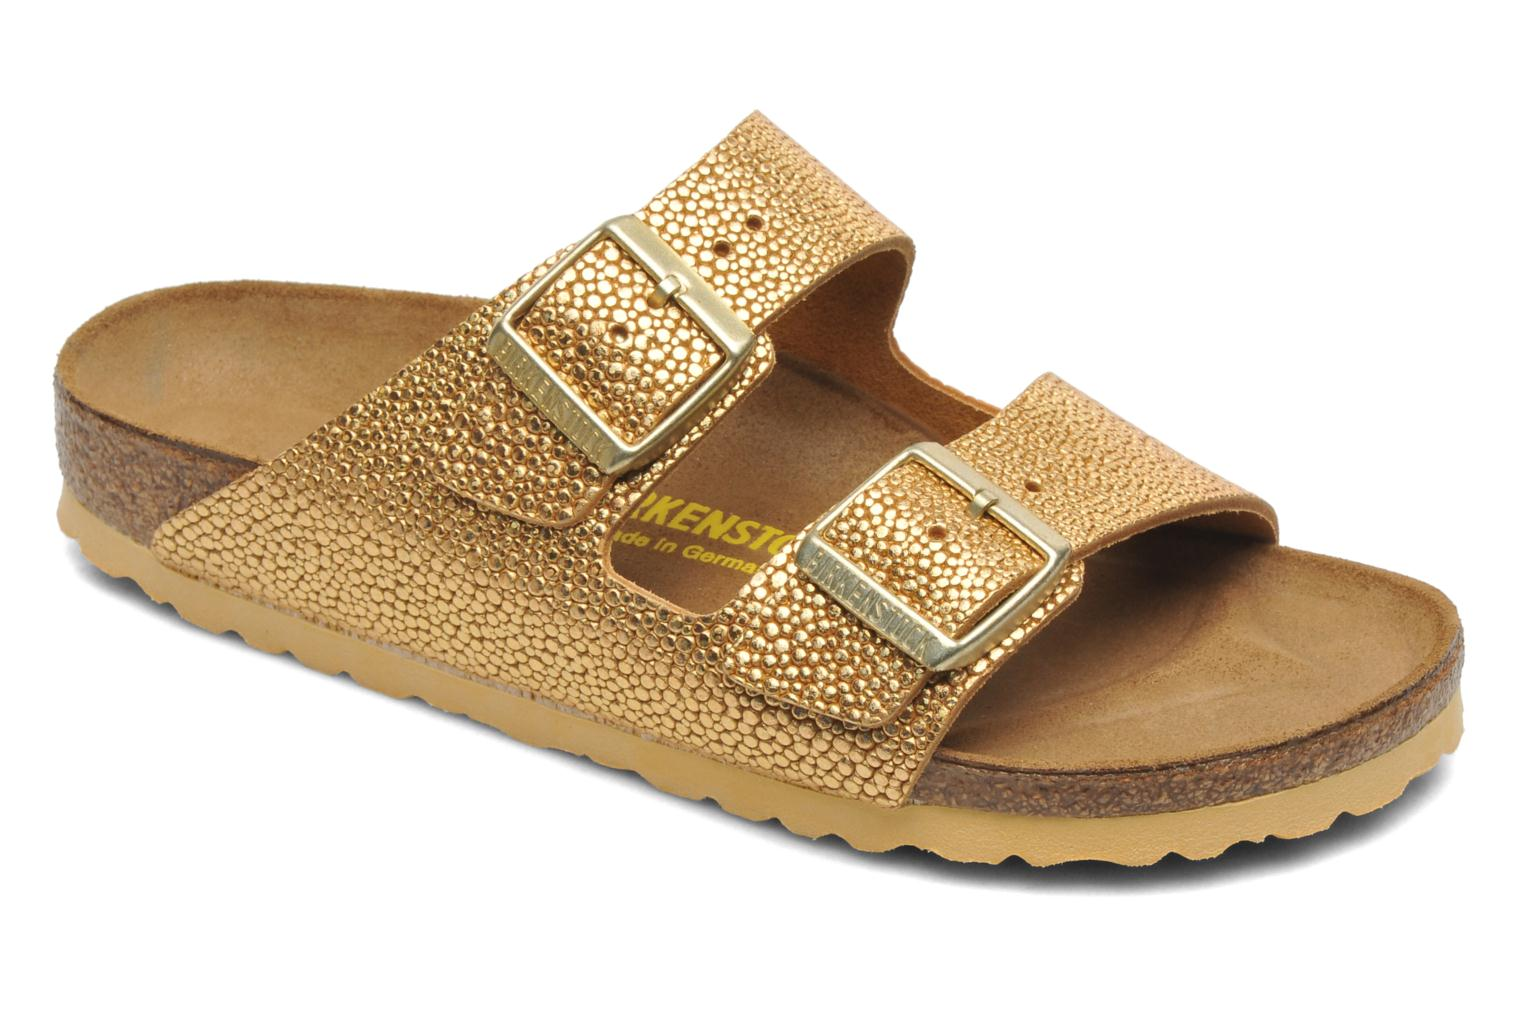 Newest Birkenstock Arizona Cuir W Bronze and Gold Womens Mules & Clogs Outlet UK1146